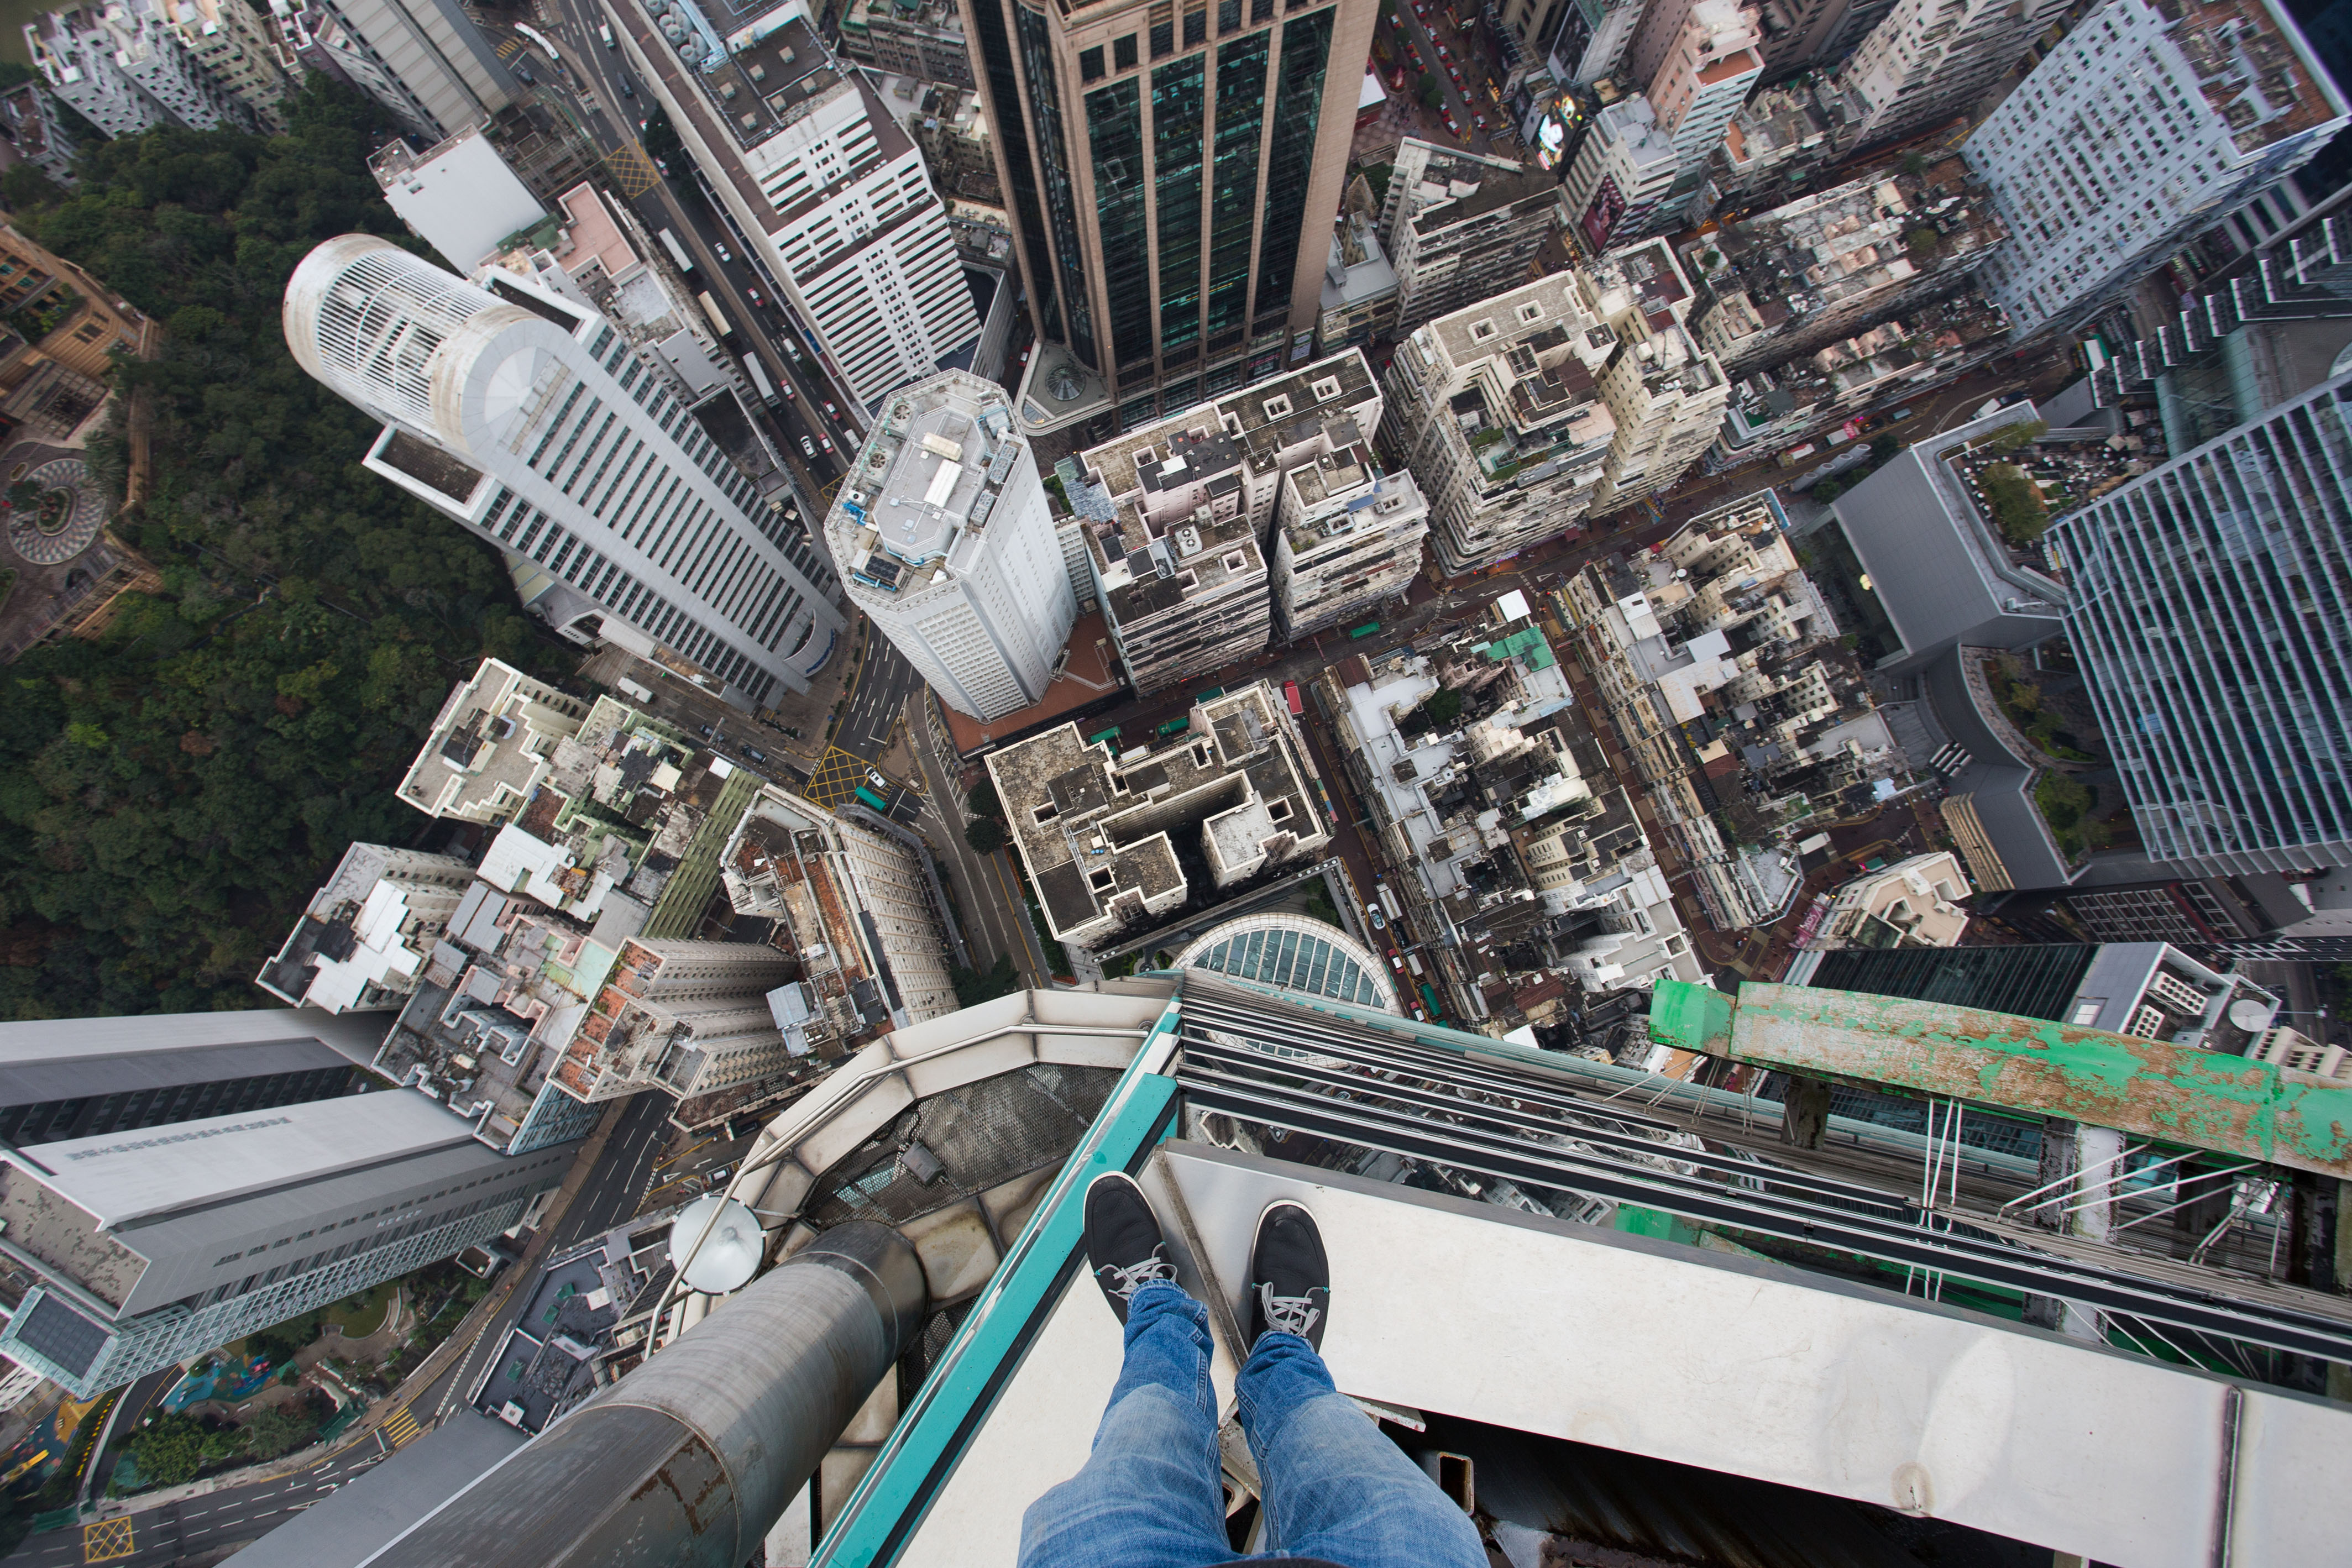 Headcam Footage Shows Daredevil Teen Scaling Skyscraper